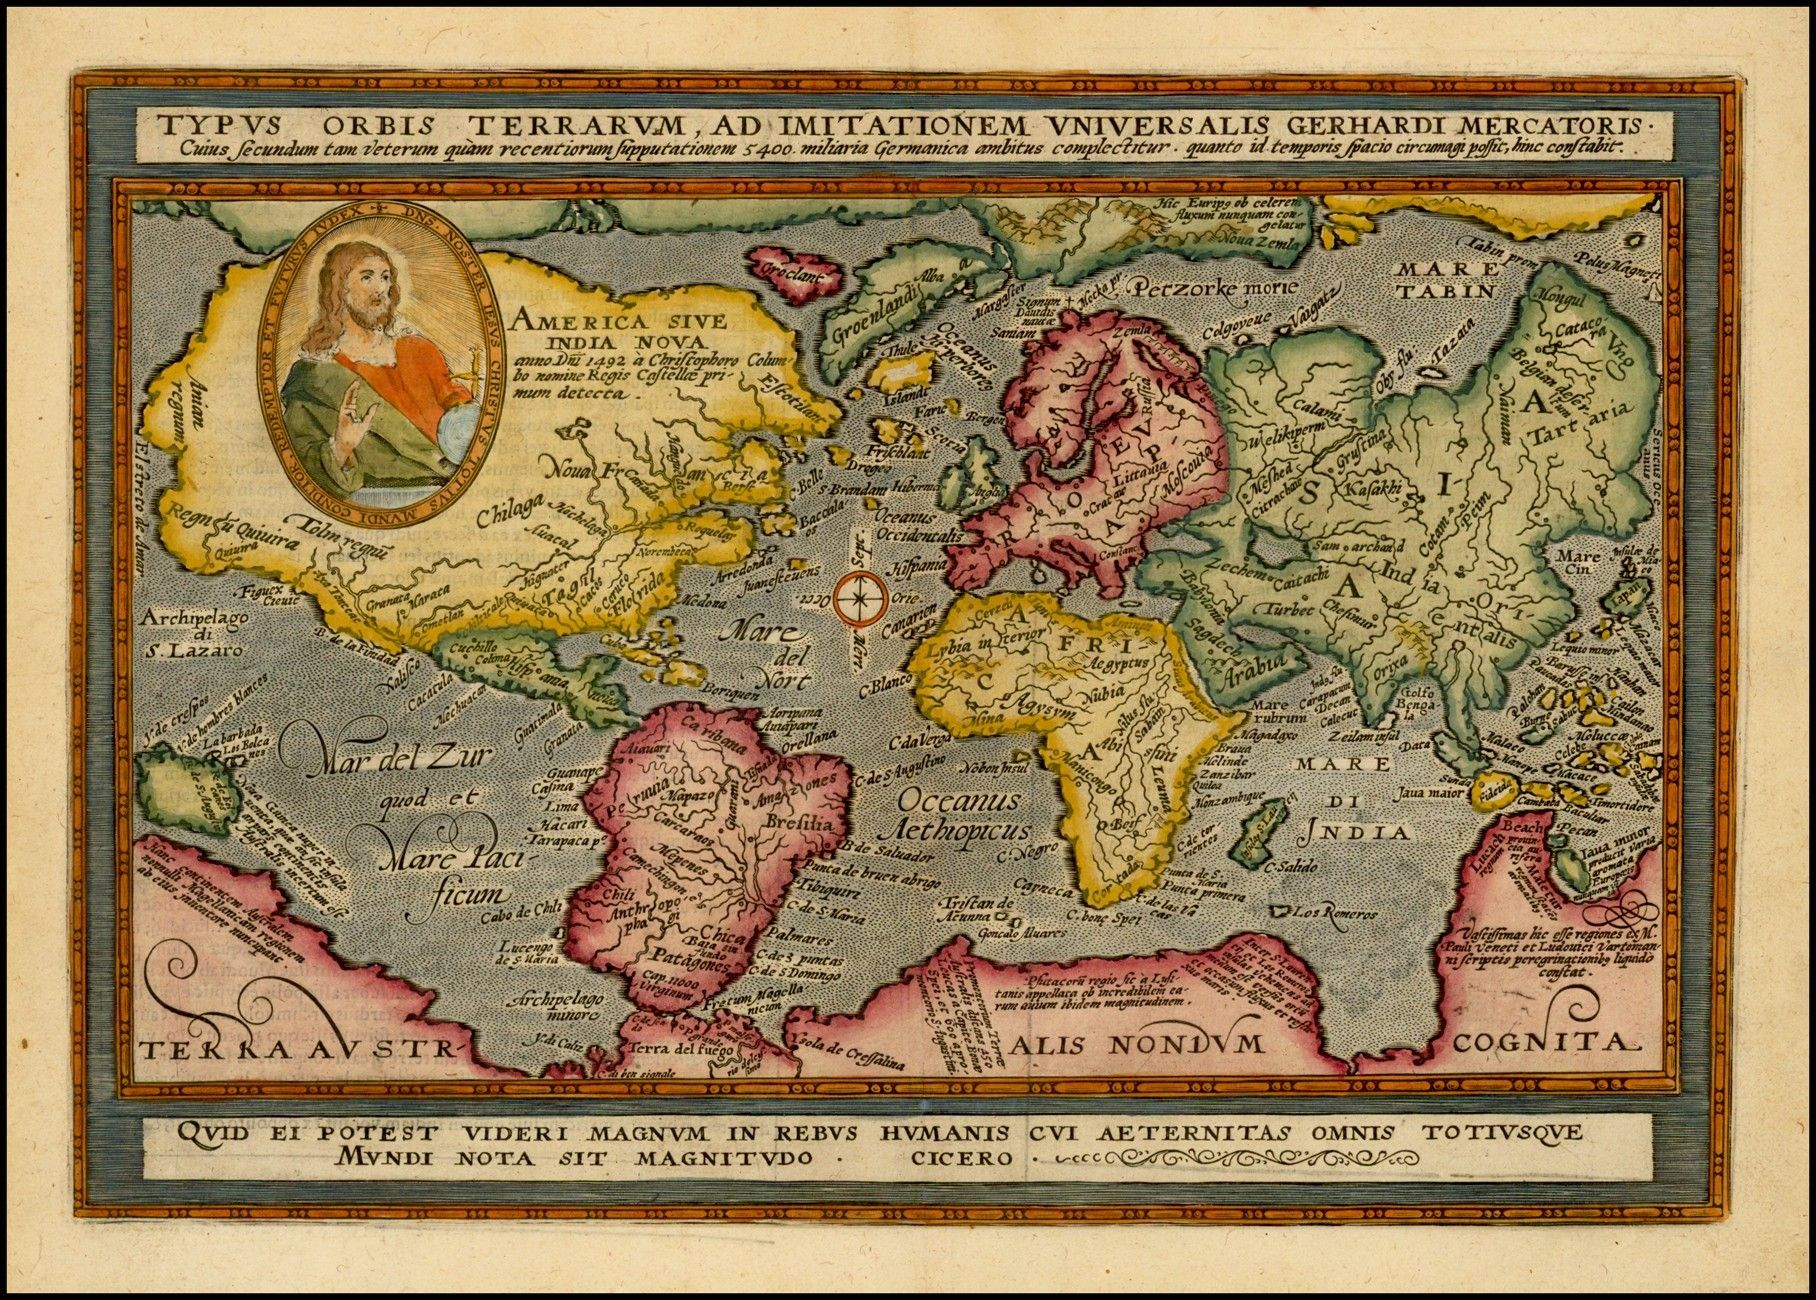 world map 1600s | Old maps | Map, Vintage world maps, Old maps